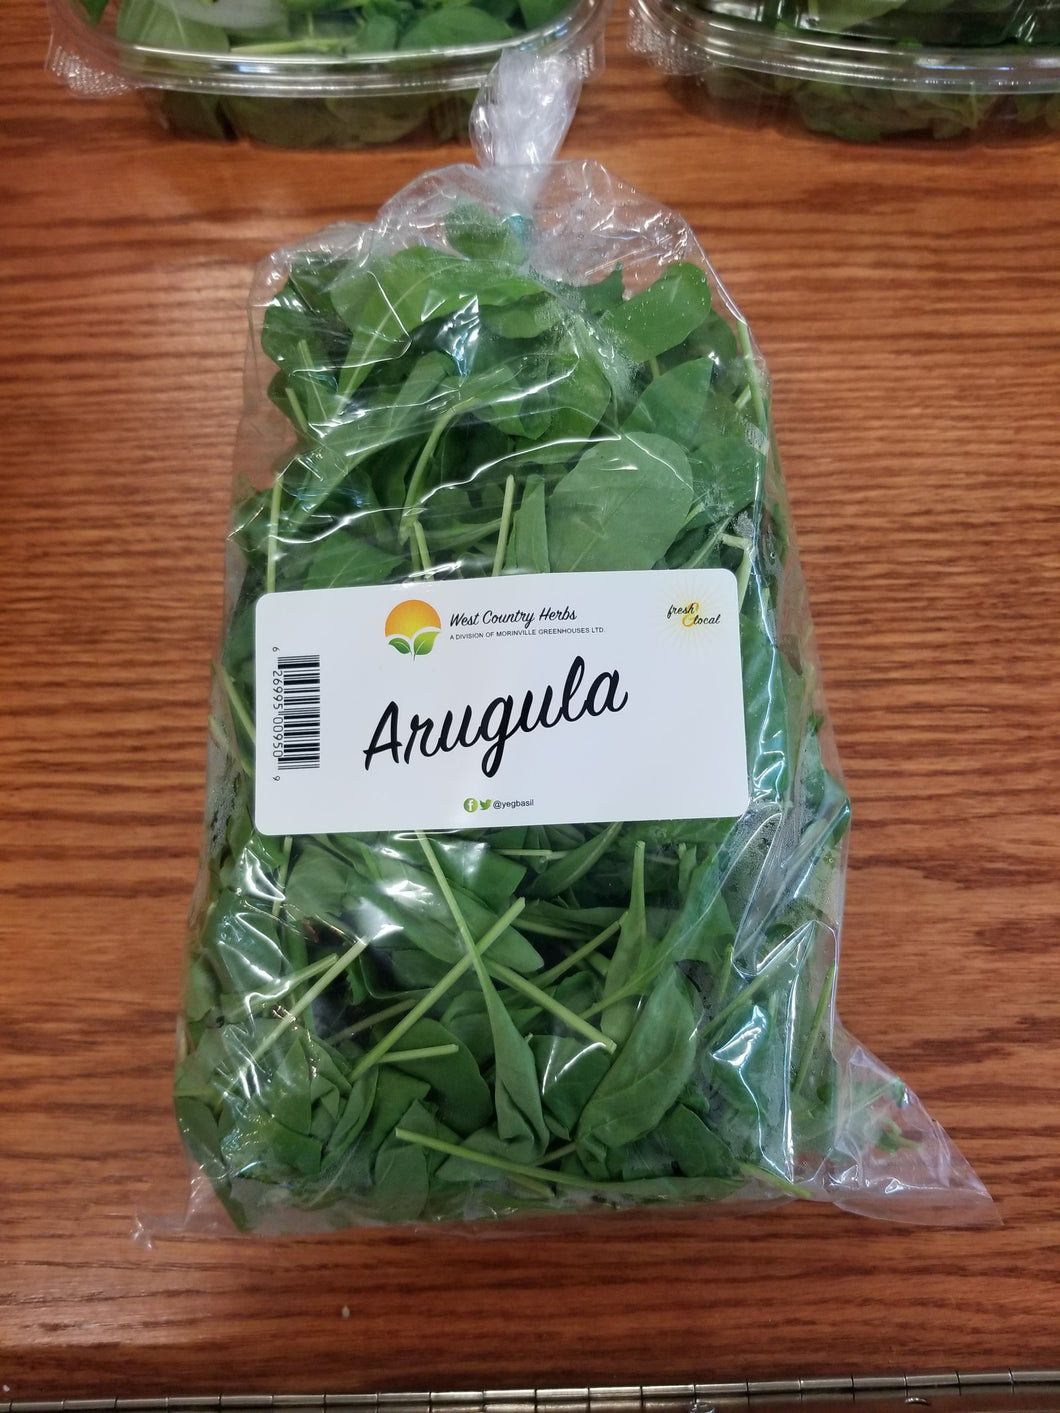 Organic West Country Herbs Arugula